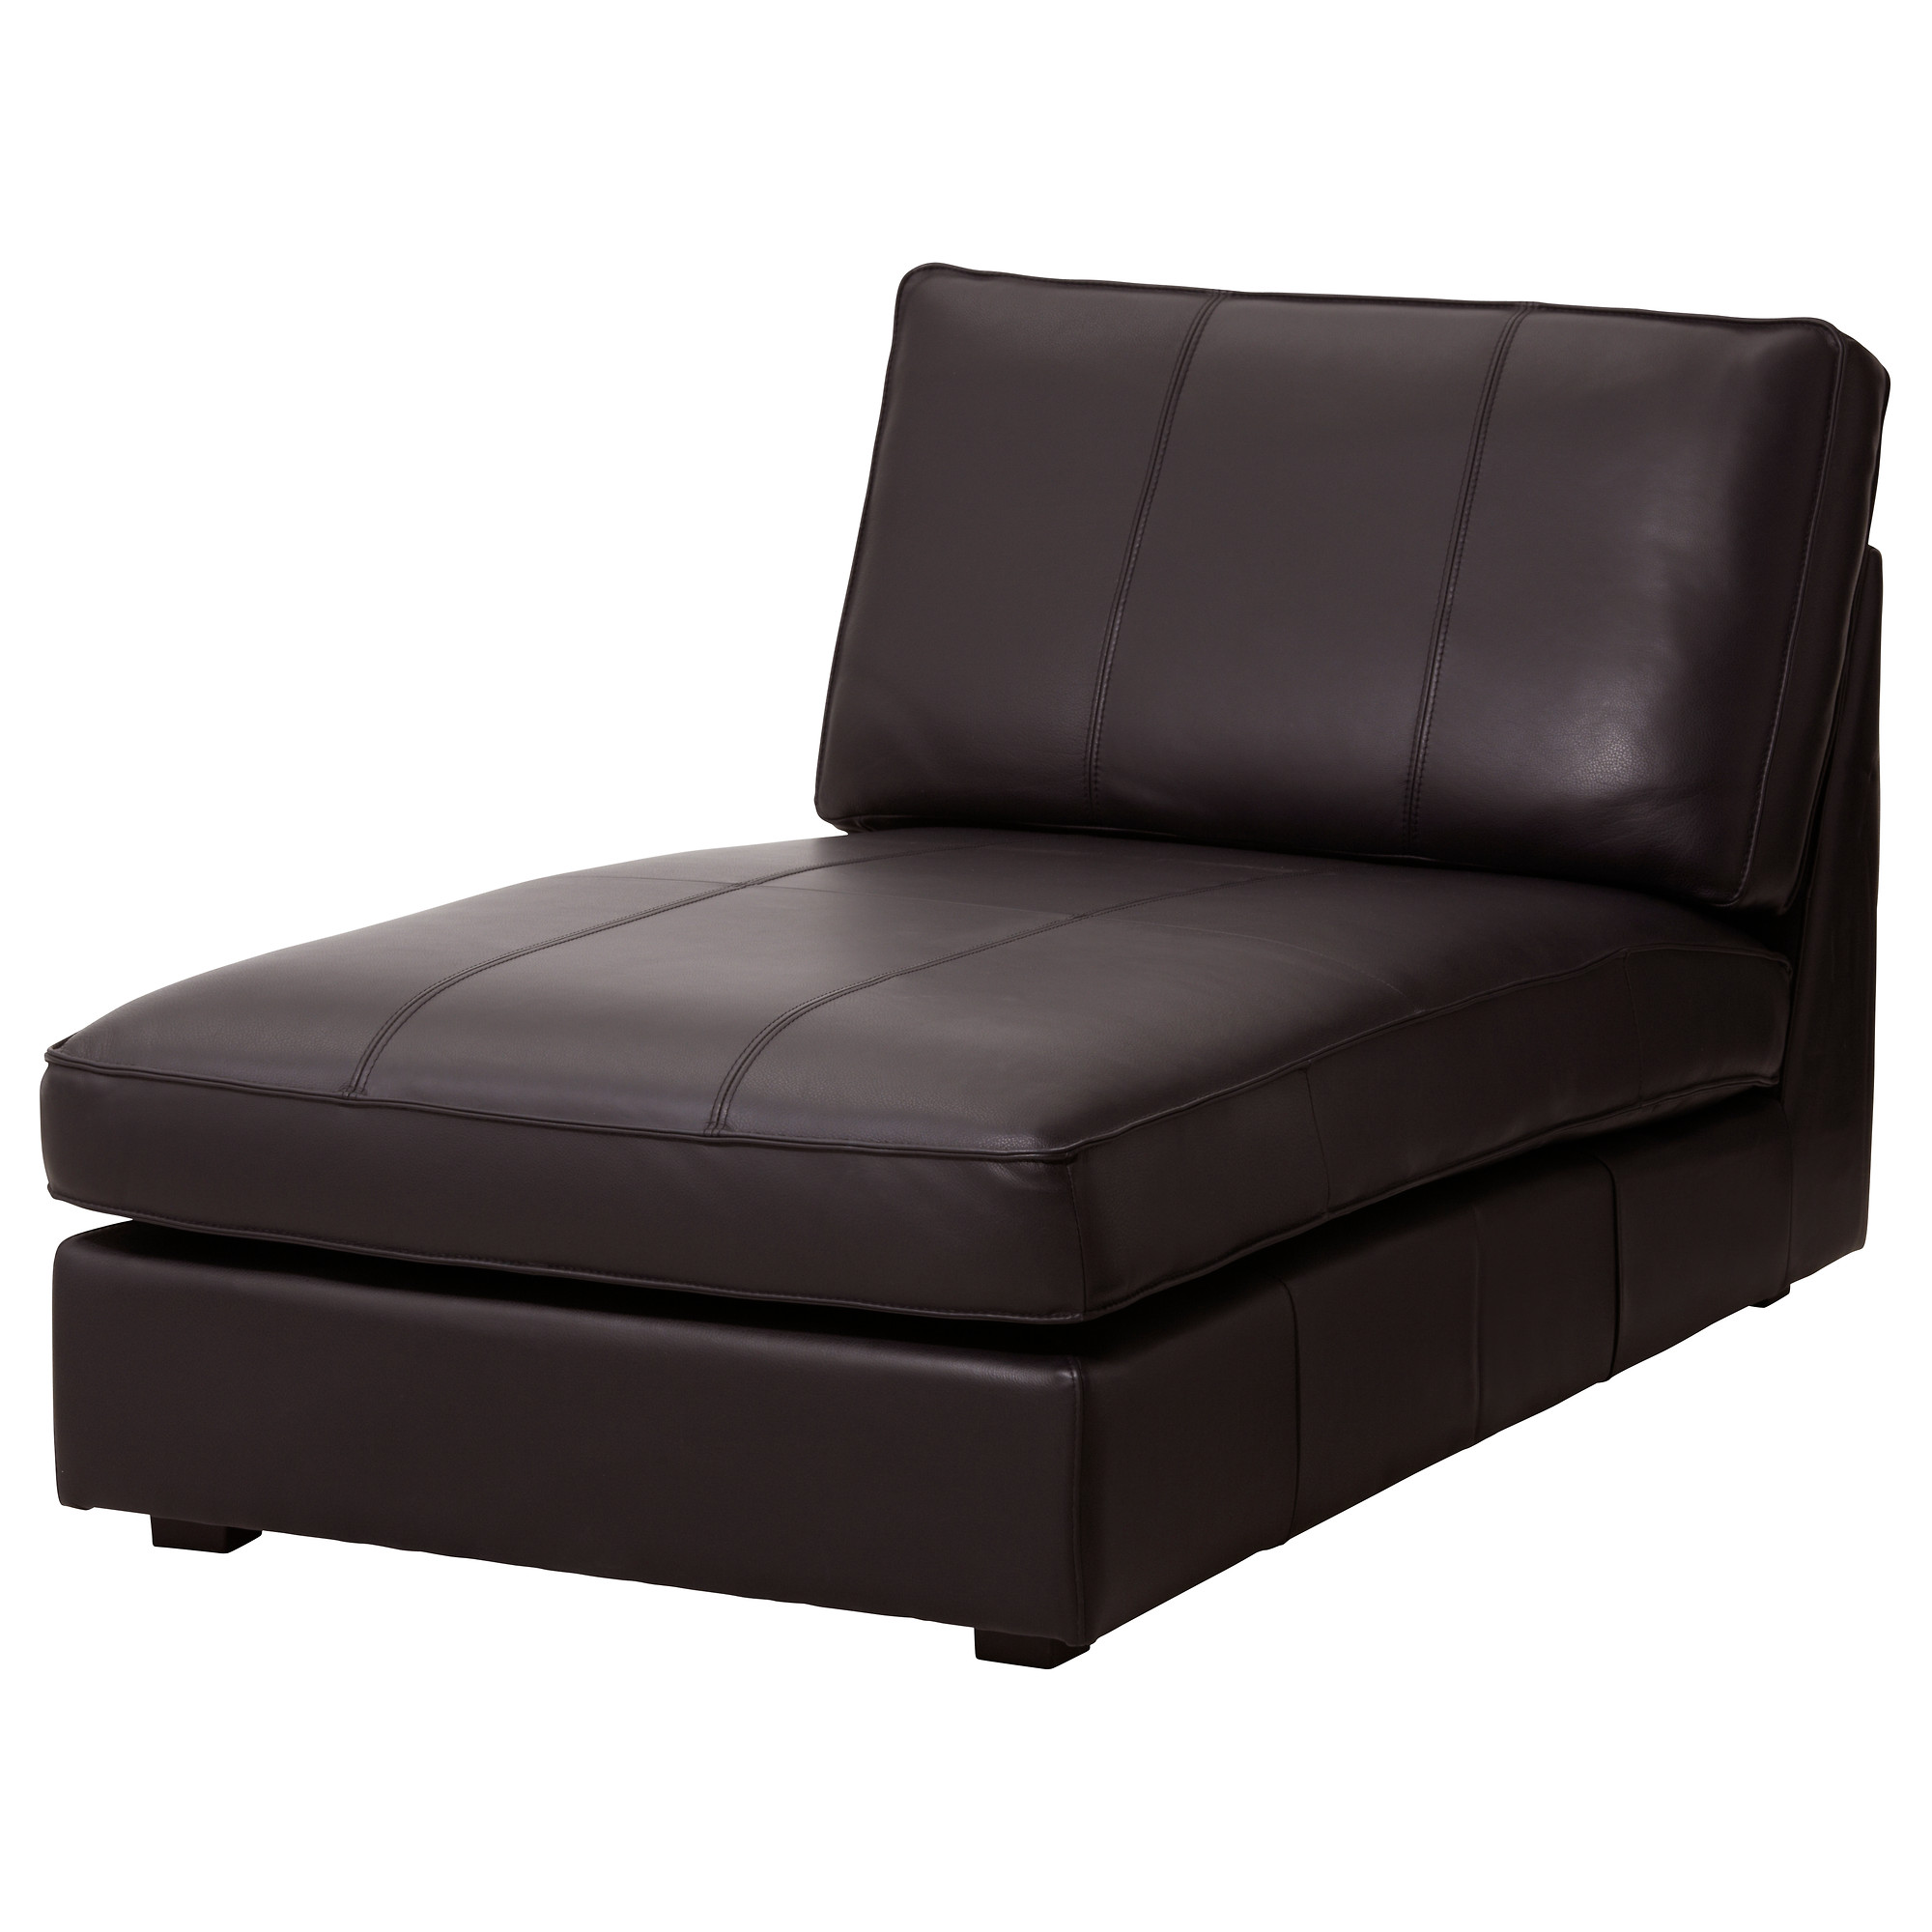 KIVIK, chaise longue, Grann/Bomstad dark brown